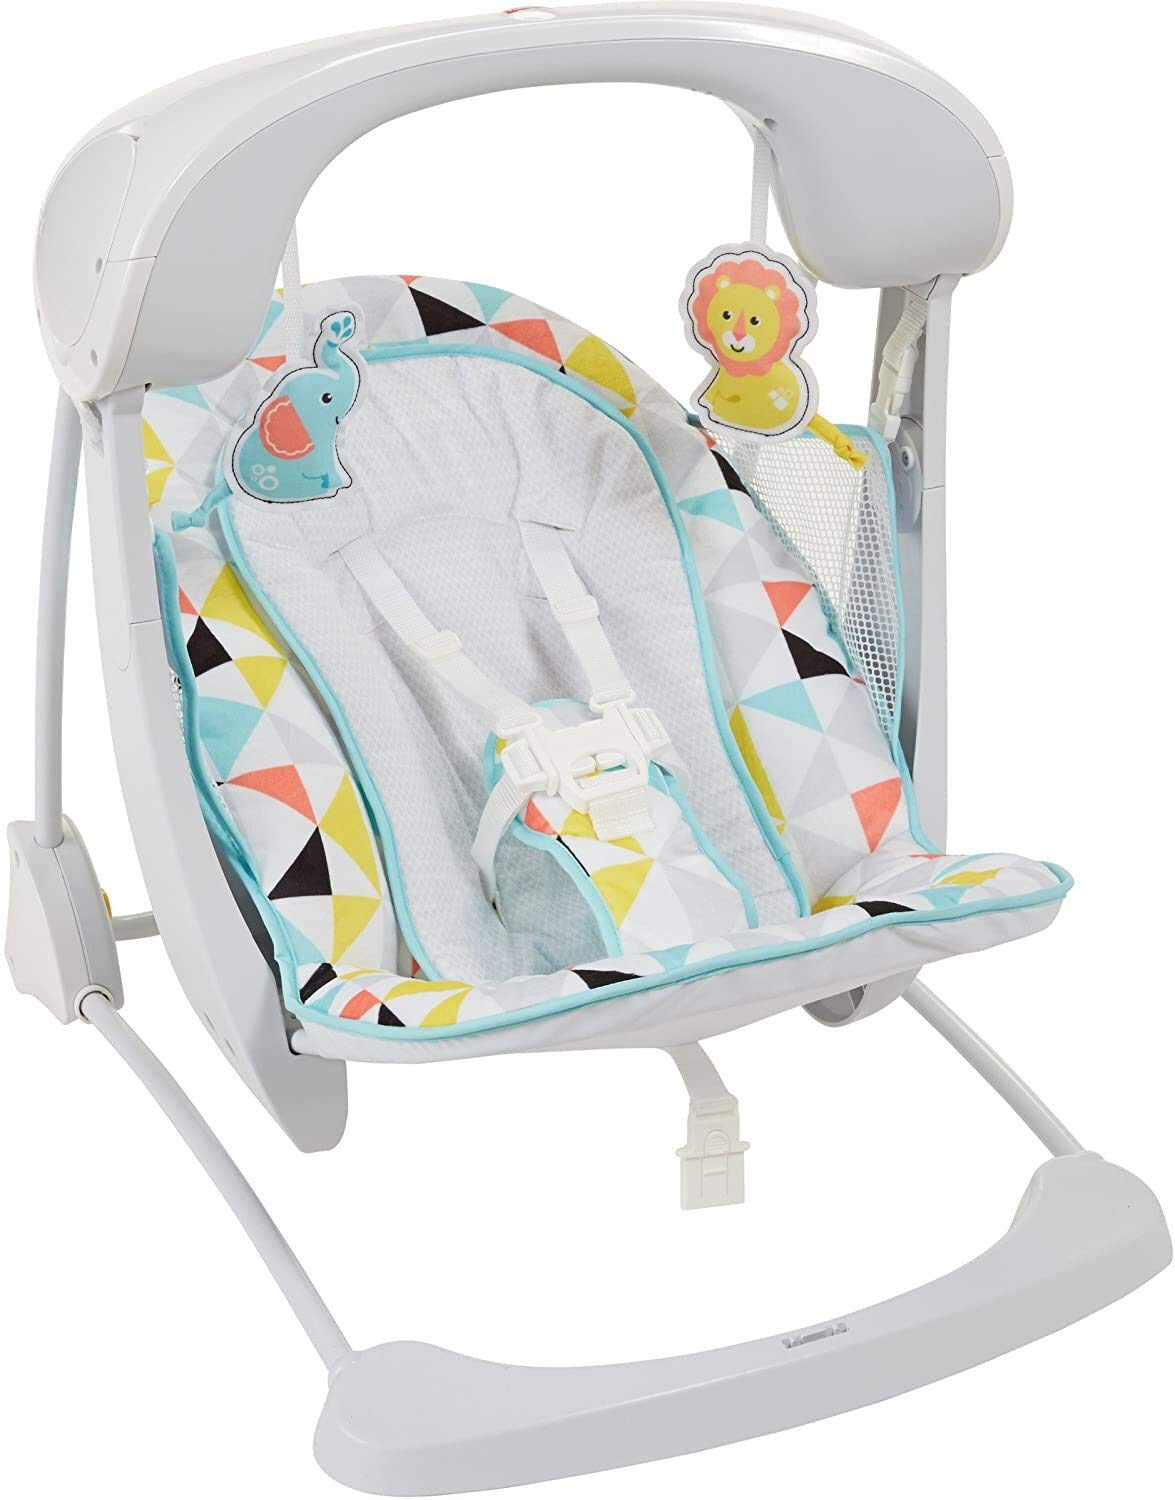 Fisher Price Deluxe Take Along Swing Seat Baby